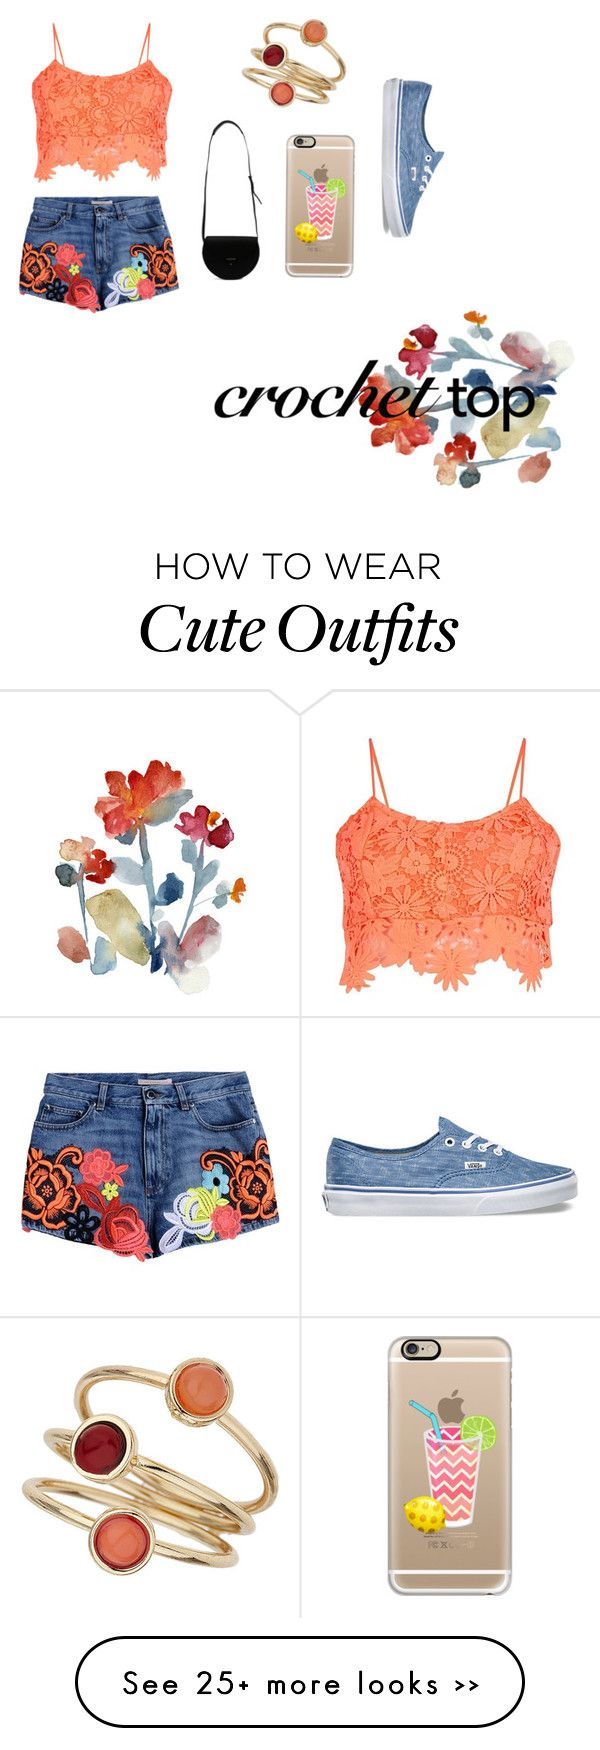 """""""Crochet top - 15. outfit"""" by veronika-rohlova on Polyvore"""